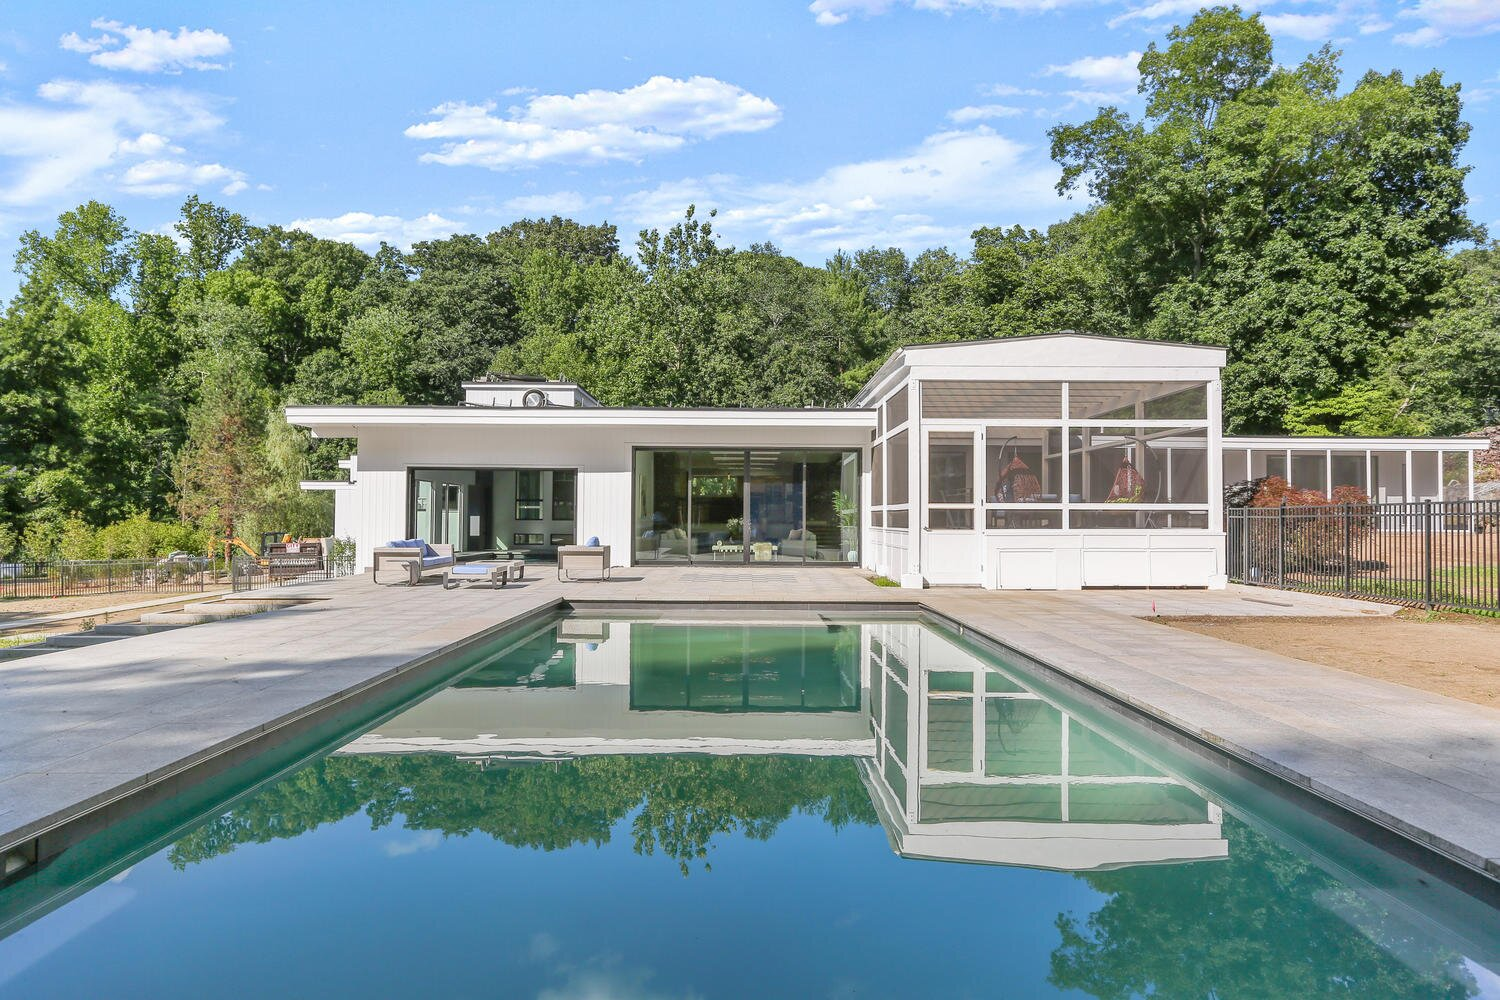 Modern home with Outdoor, Large Pools, Tubs, Shower, and Trees. Outdoor Pool and Backyard  Photo 6 of A Gut Renovated MidCentury Modern Green Energy Home for Luxury Winter Living for $4.65m